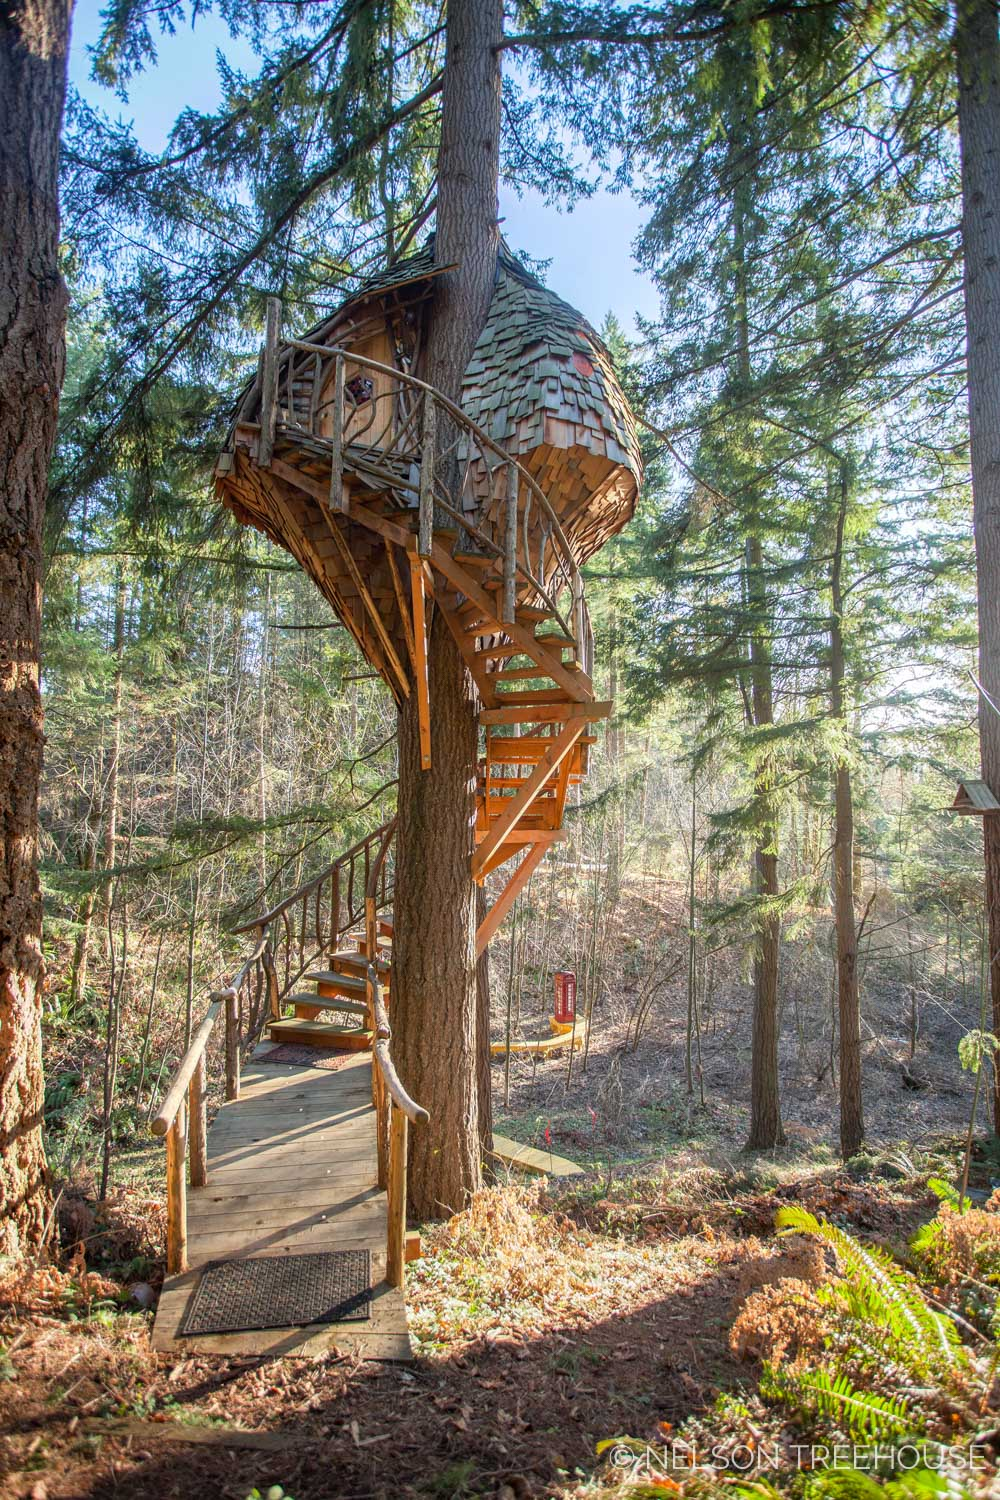 The Beehive Treehouse Showcases A Stellar Set Of Winding Treehouse Stairs.